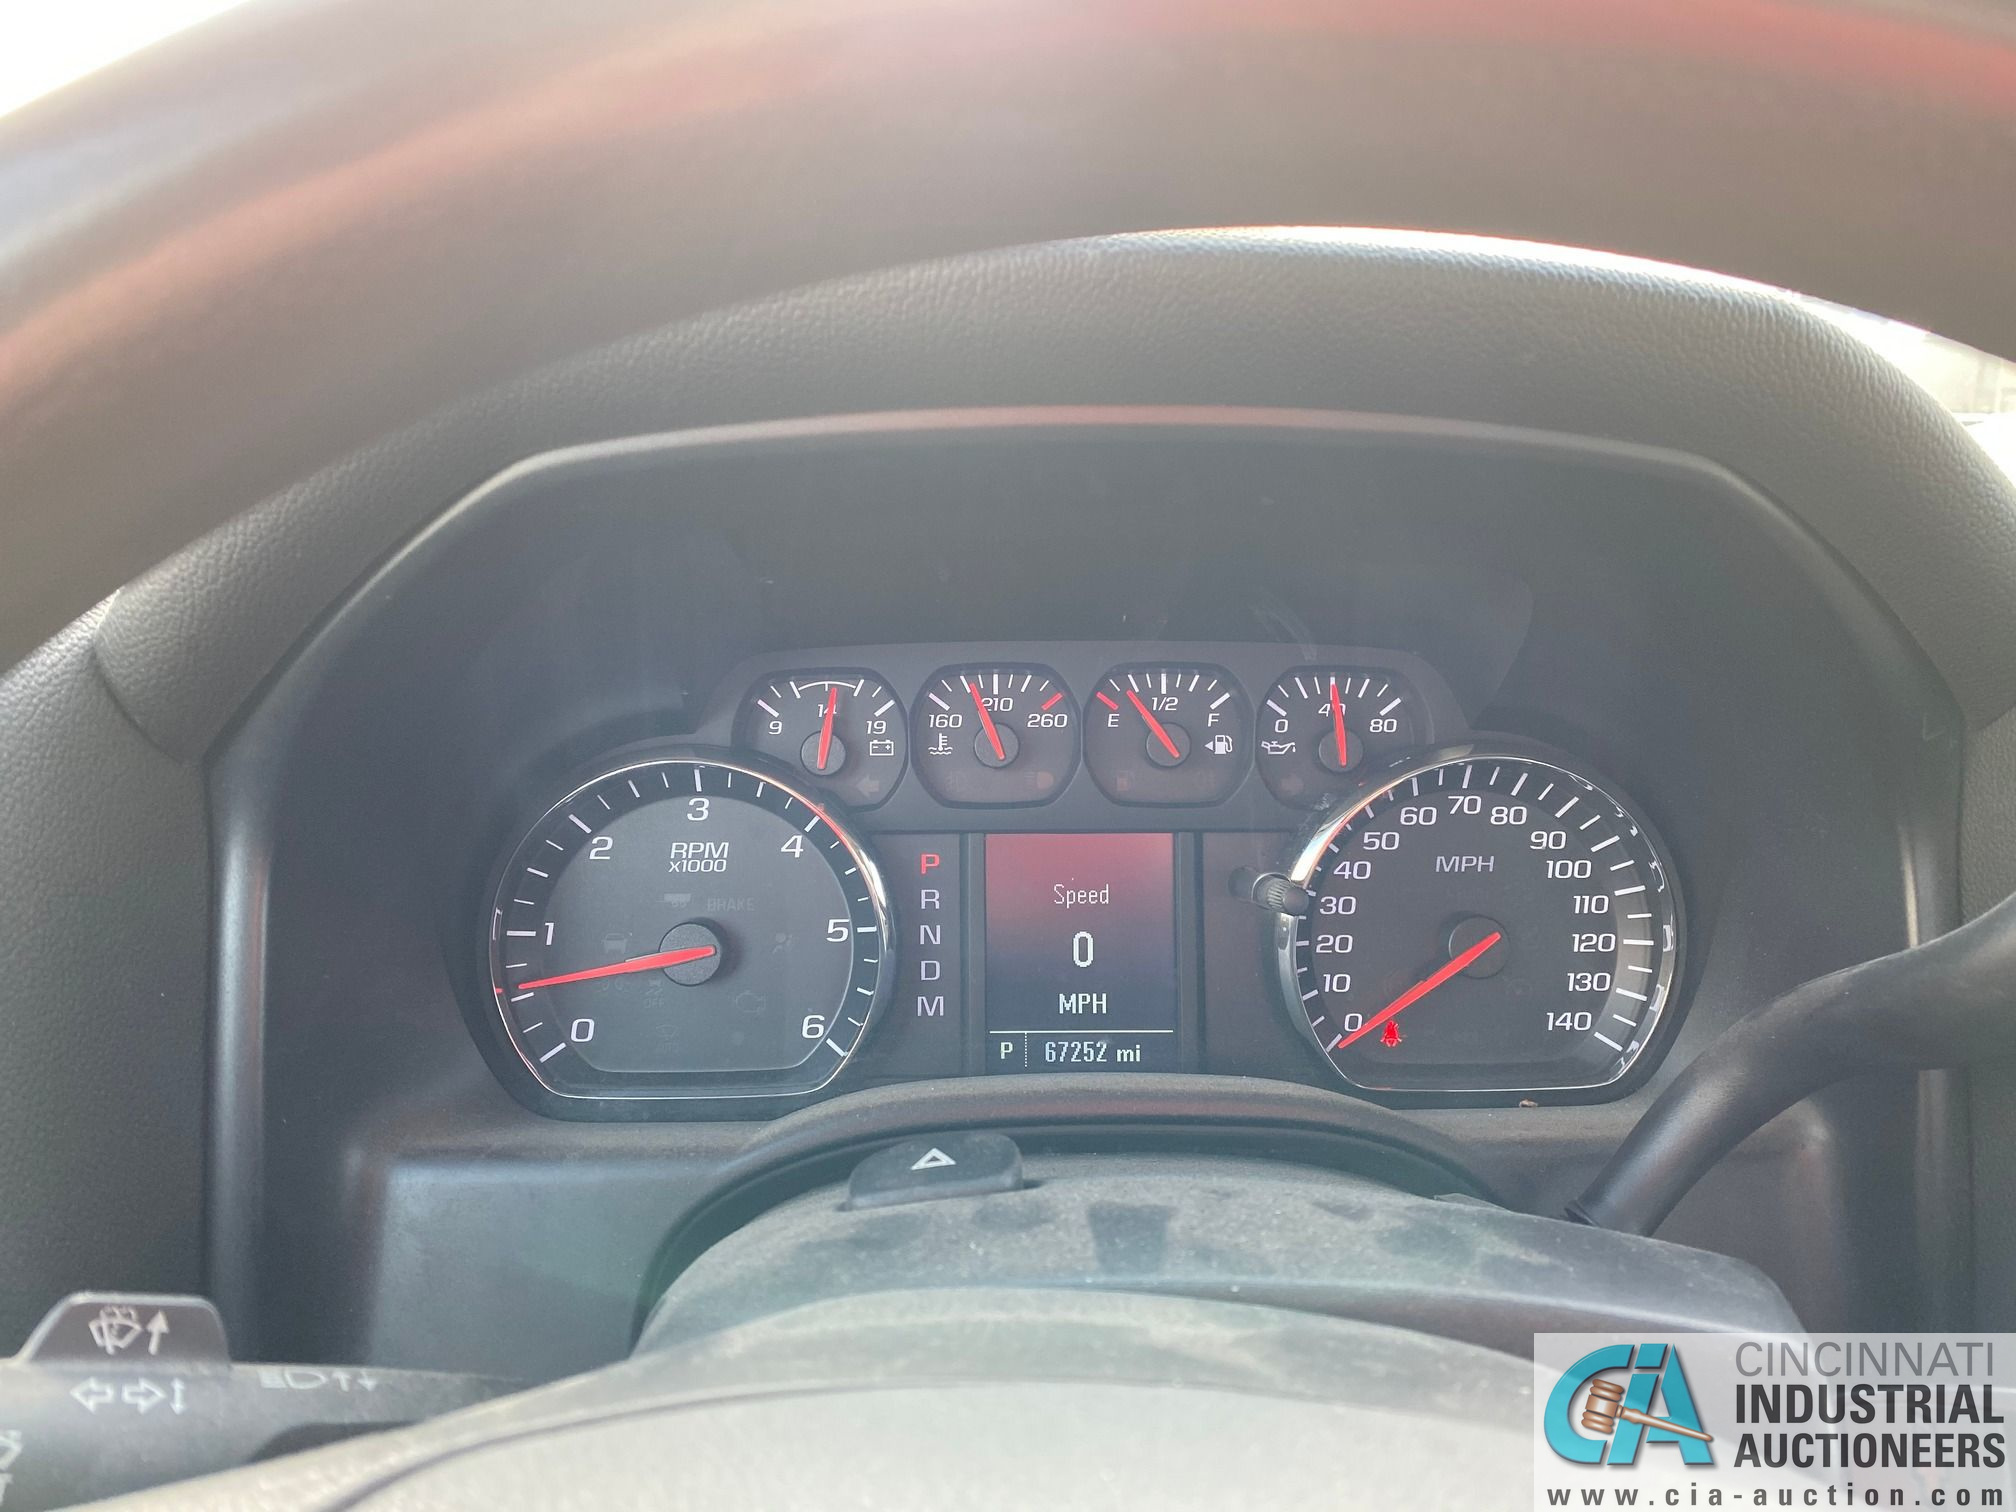 2014 CHEVROLET SILVERADO 1500 PICK UP TRUCK; VIN# 1GCRCPEH1EZ239274, 67,252 MILES SHOWING, 4.3 L, - Image 9 of 13